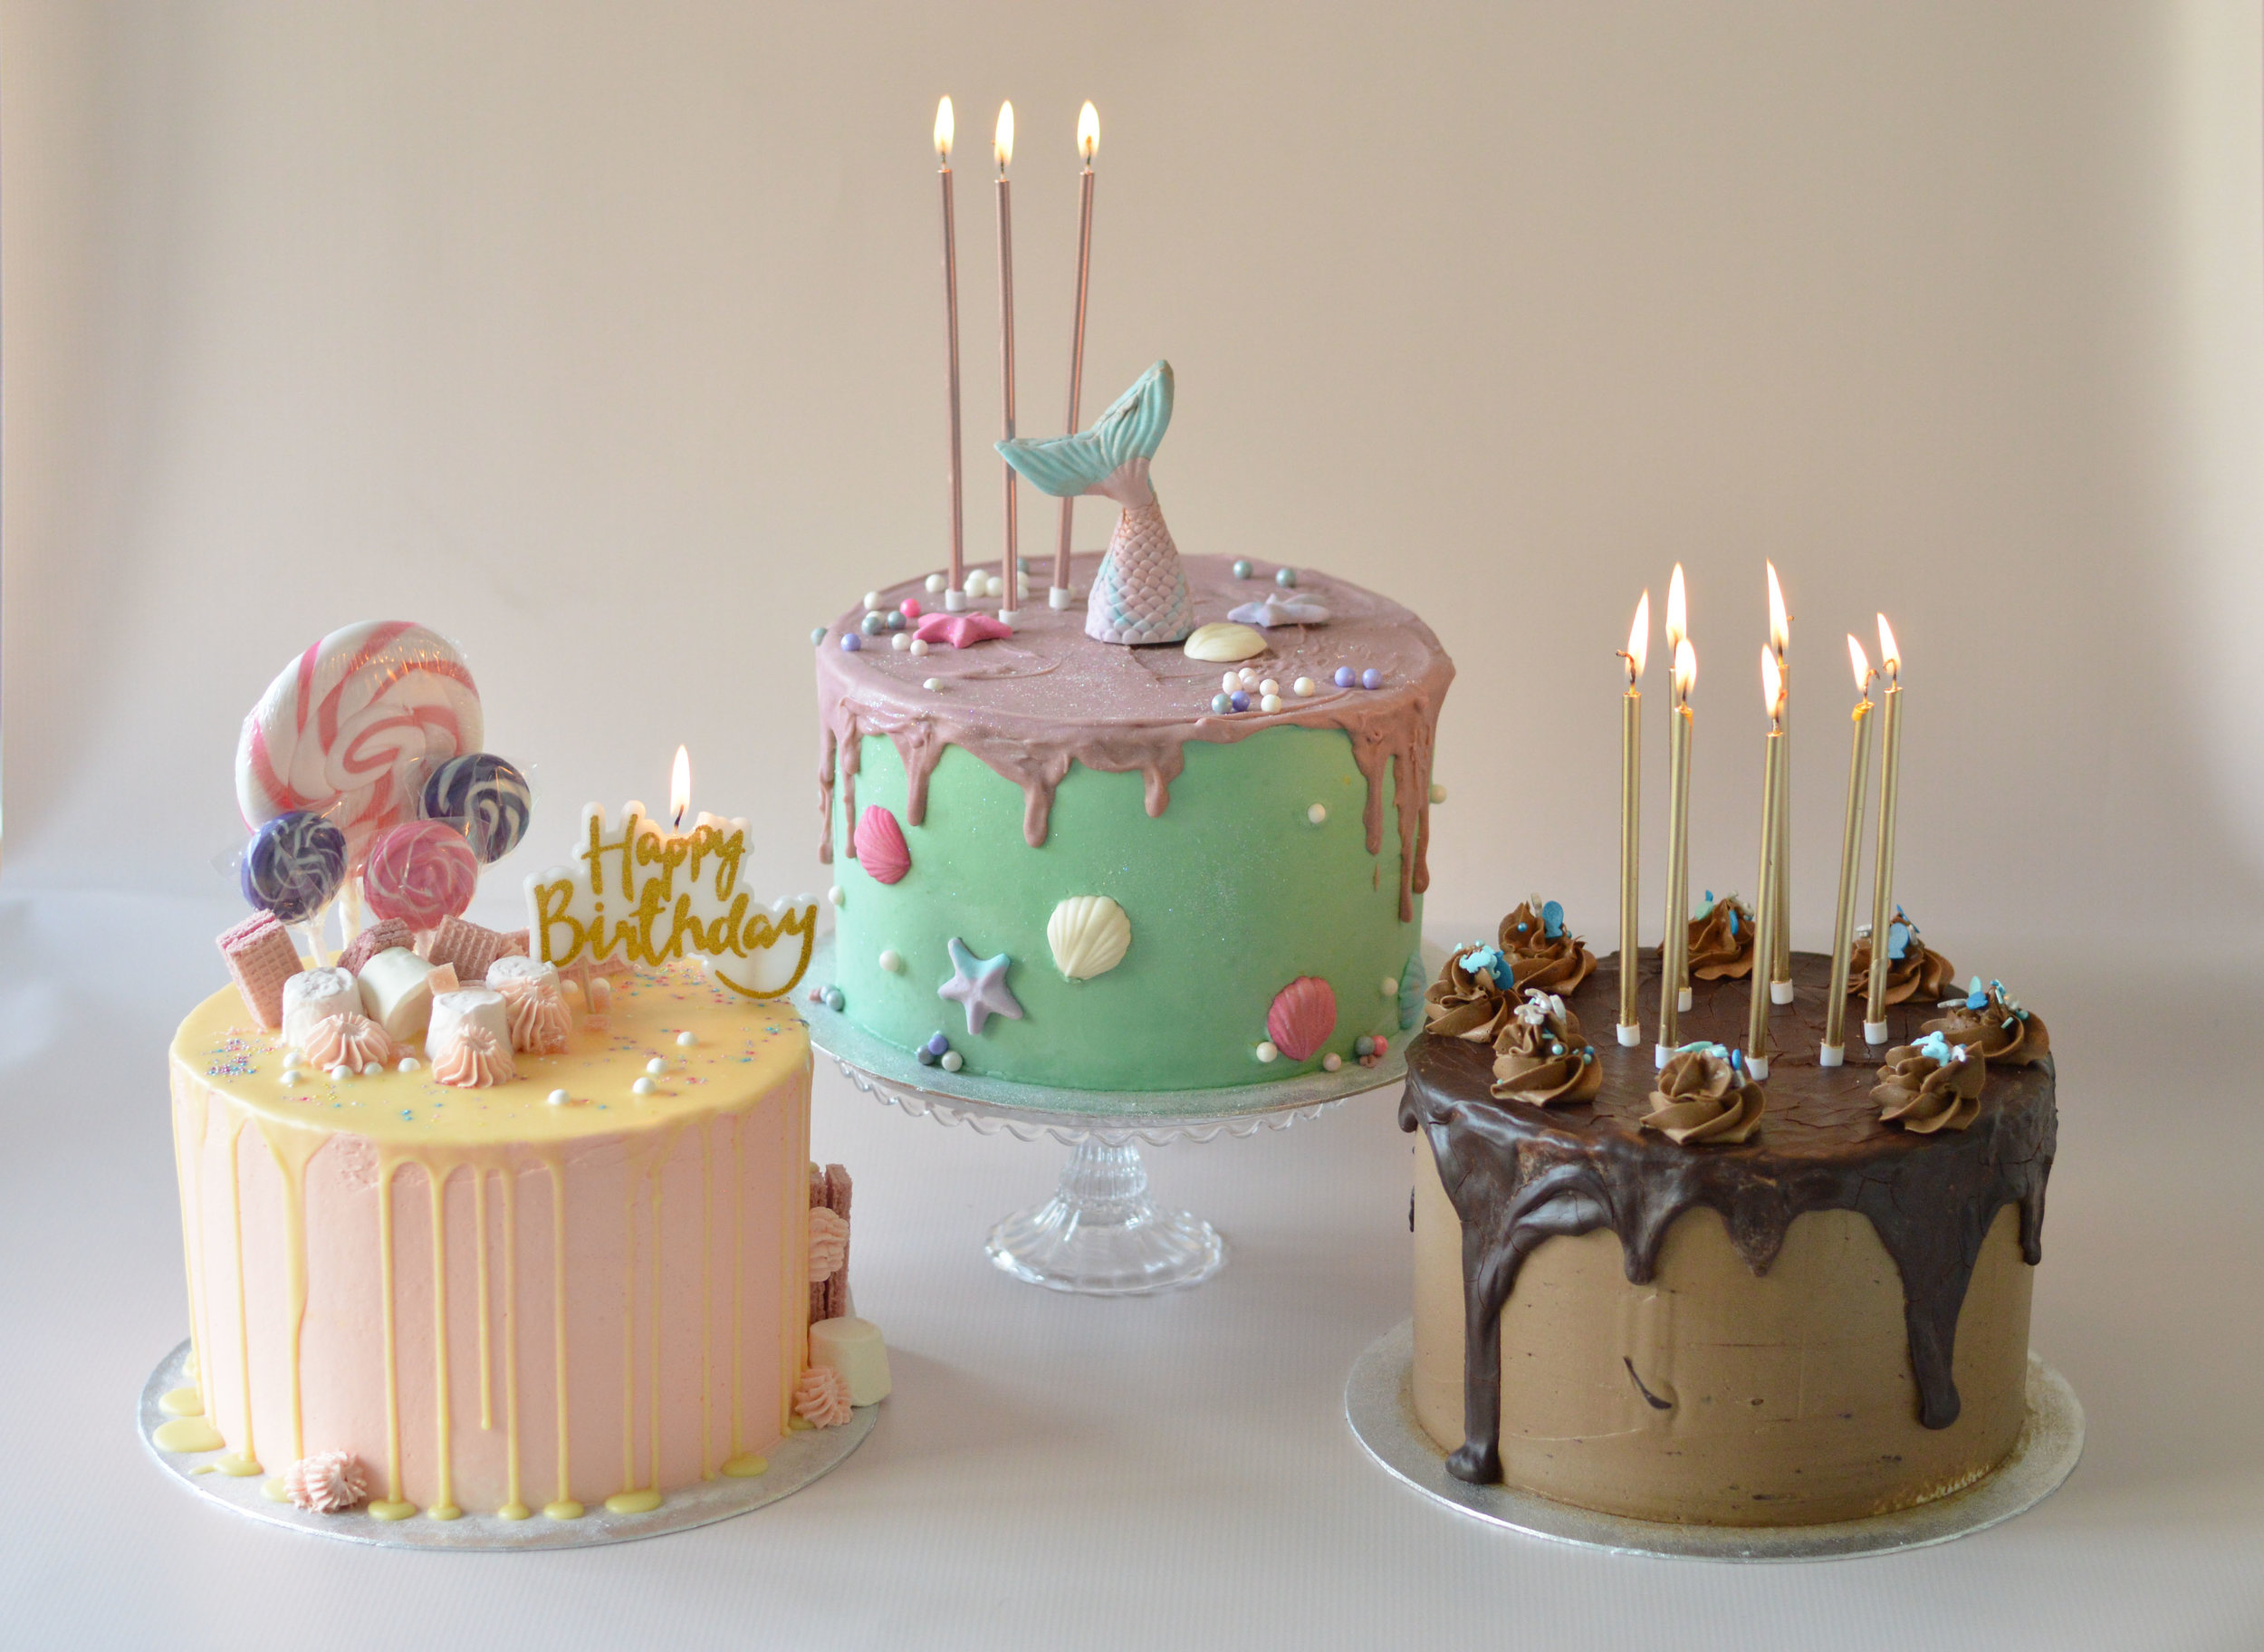 Introducing the New Drip Cake Range - 3 Days Notice. Collection or Delivery. Custom Orders 5 Days Notice